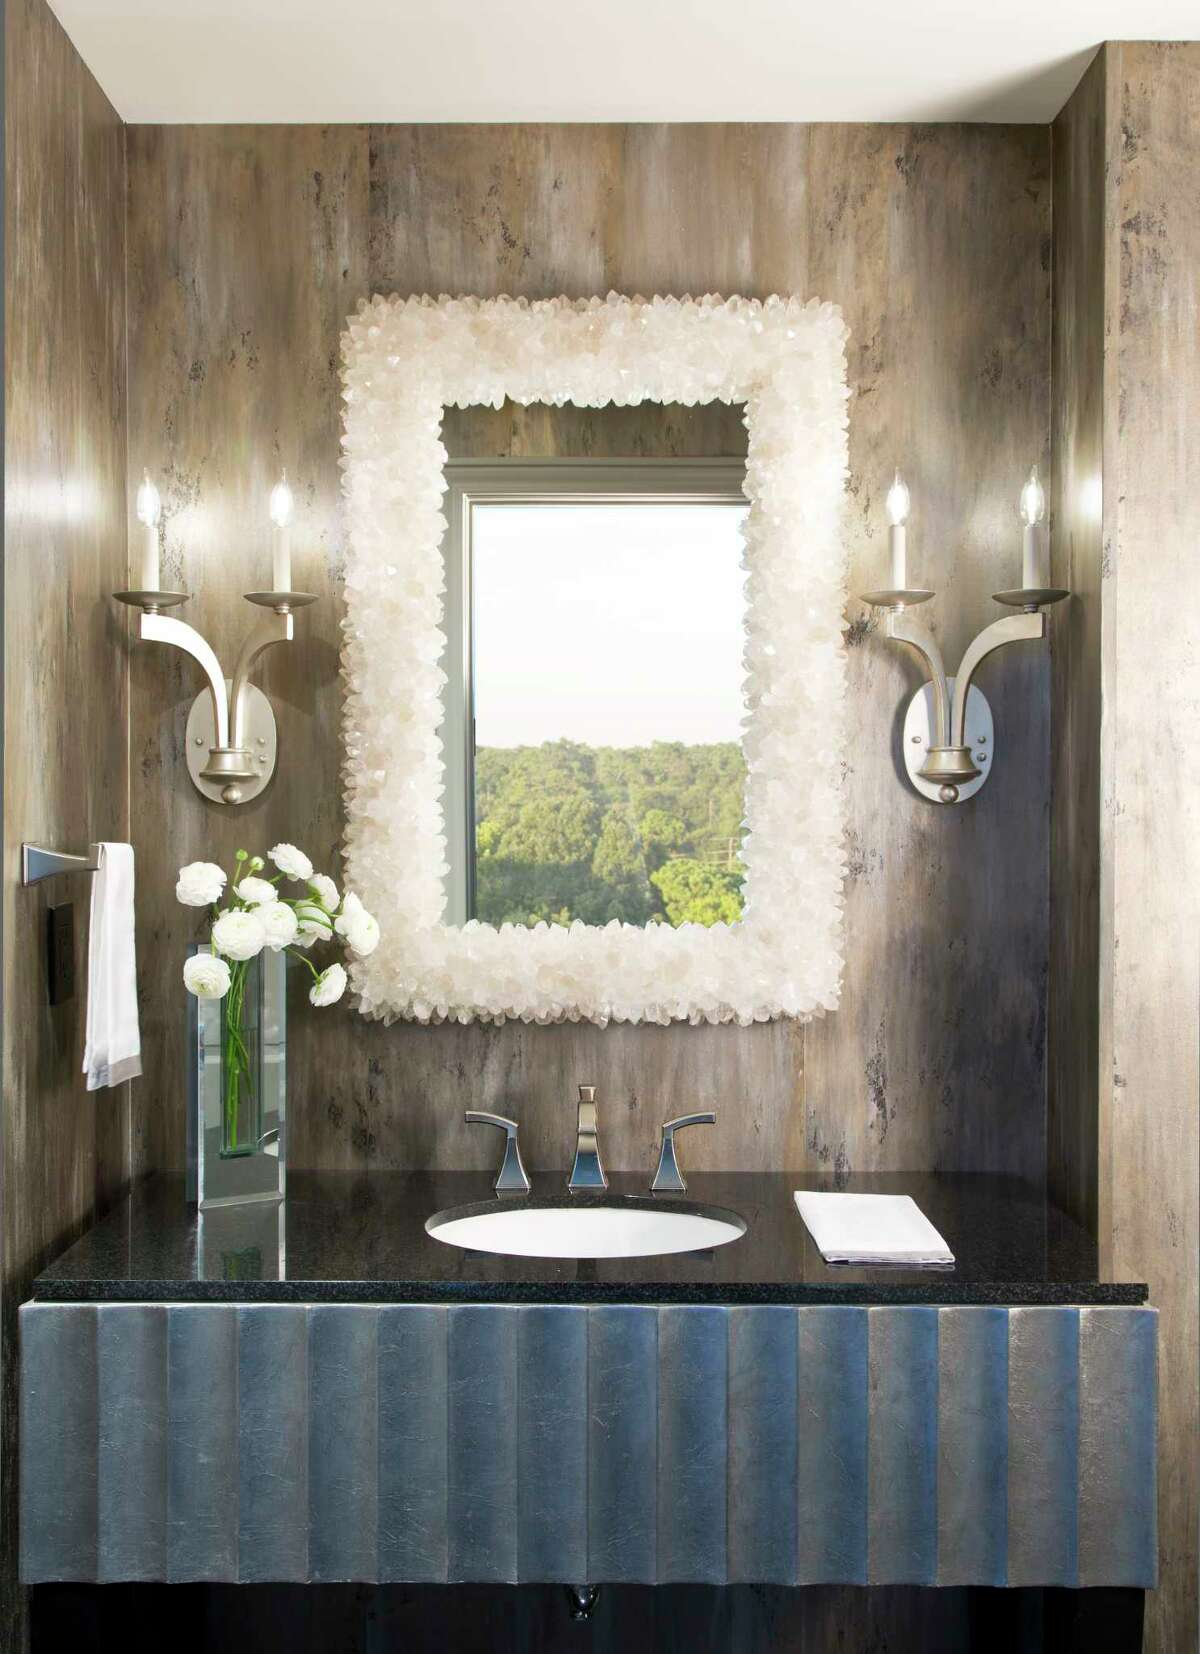 Hand-made, hand-painted wallpaper and a custom-made, quartz-encrusted mirror makes this just about the prettiest powder room in Houston.